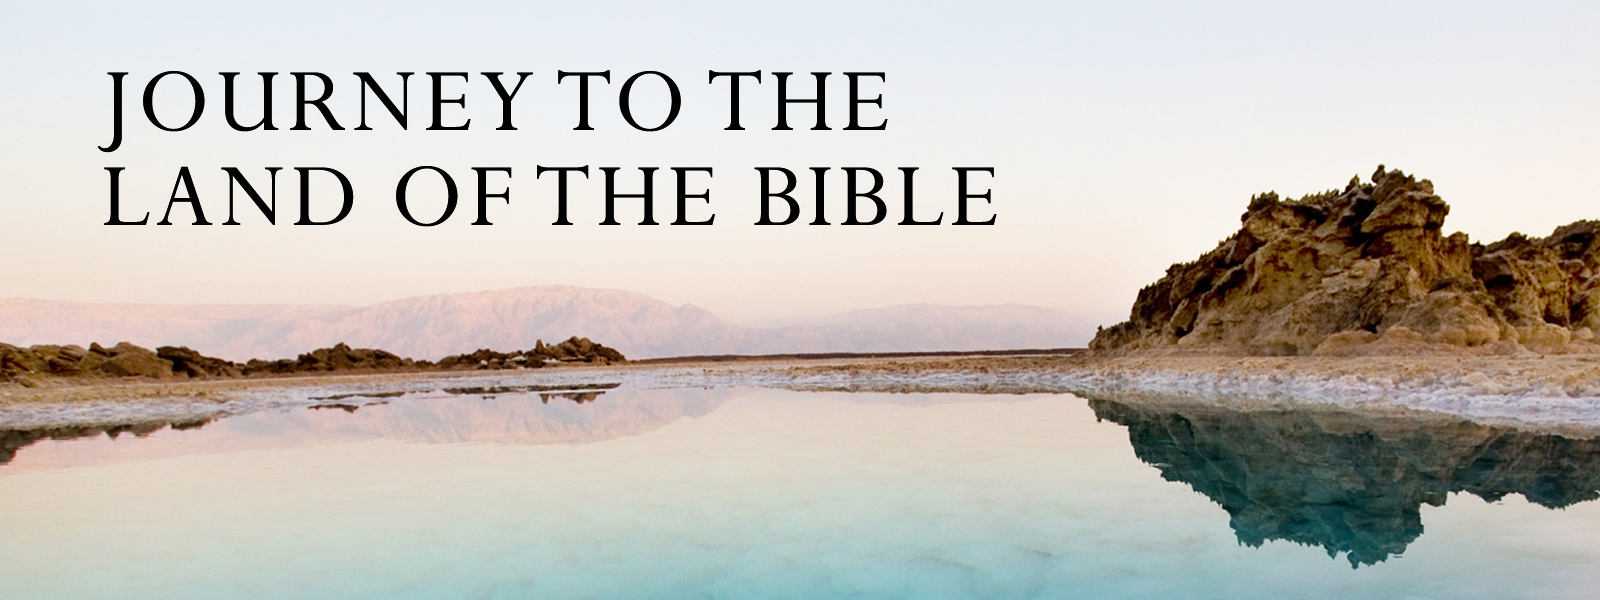 Journey to the Land of the Bible